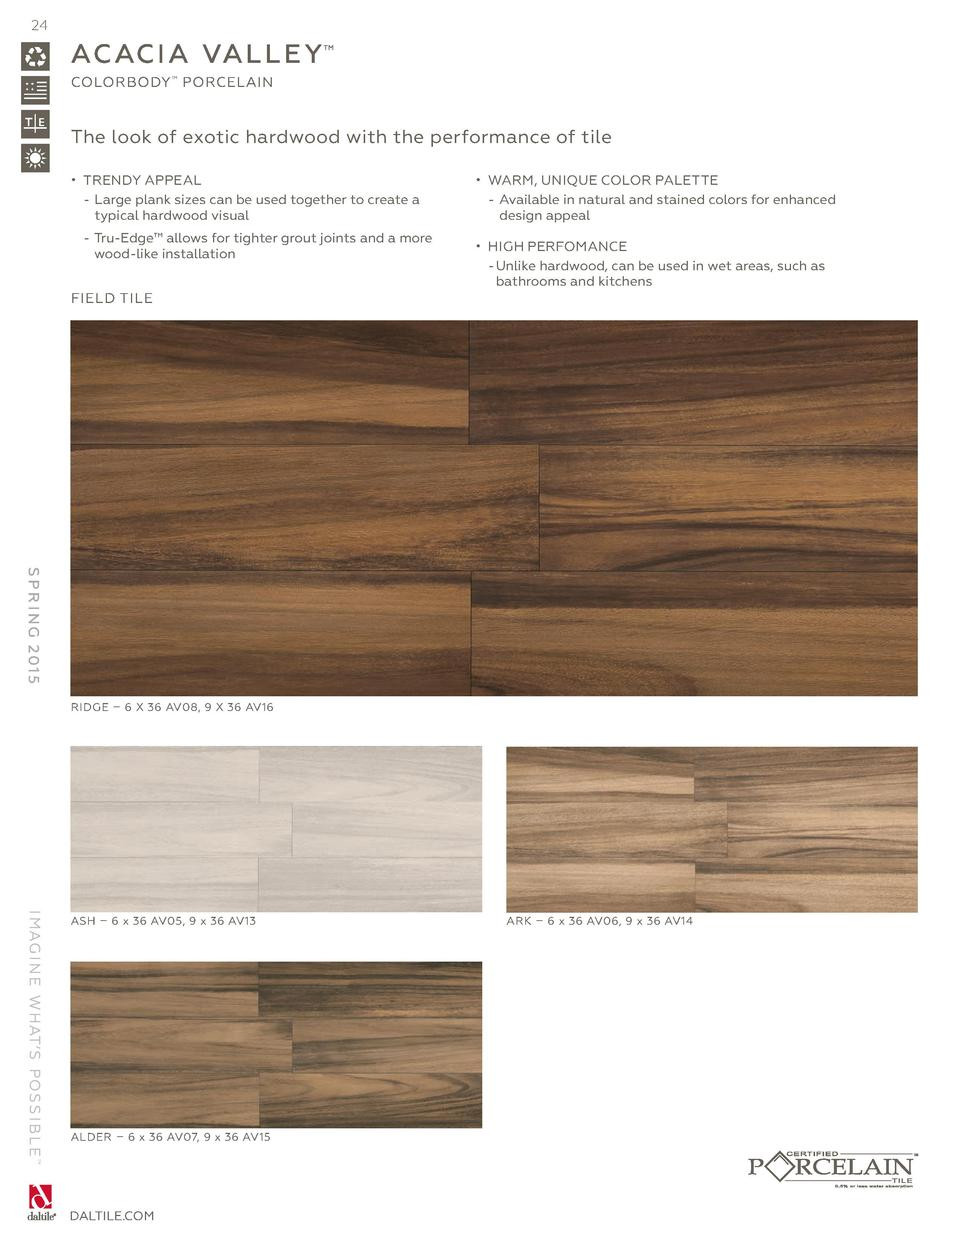 exotic hardwood flooring toronto of daltile spring 2015 catalog simplebooklet com in 24 ac ac i a val l e y colorbody porcelain the look of exotic hardwood with the performance